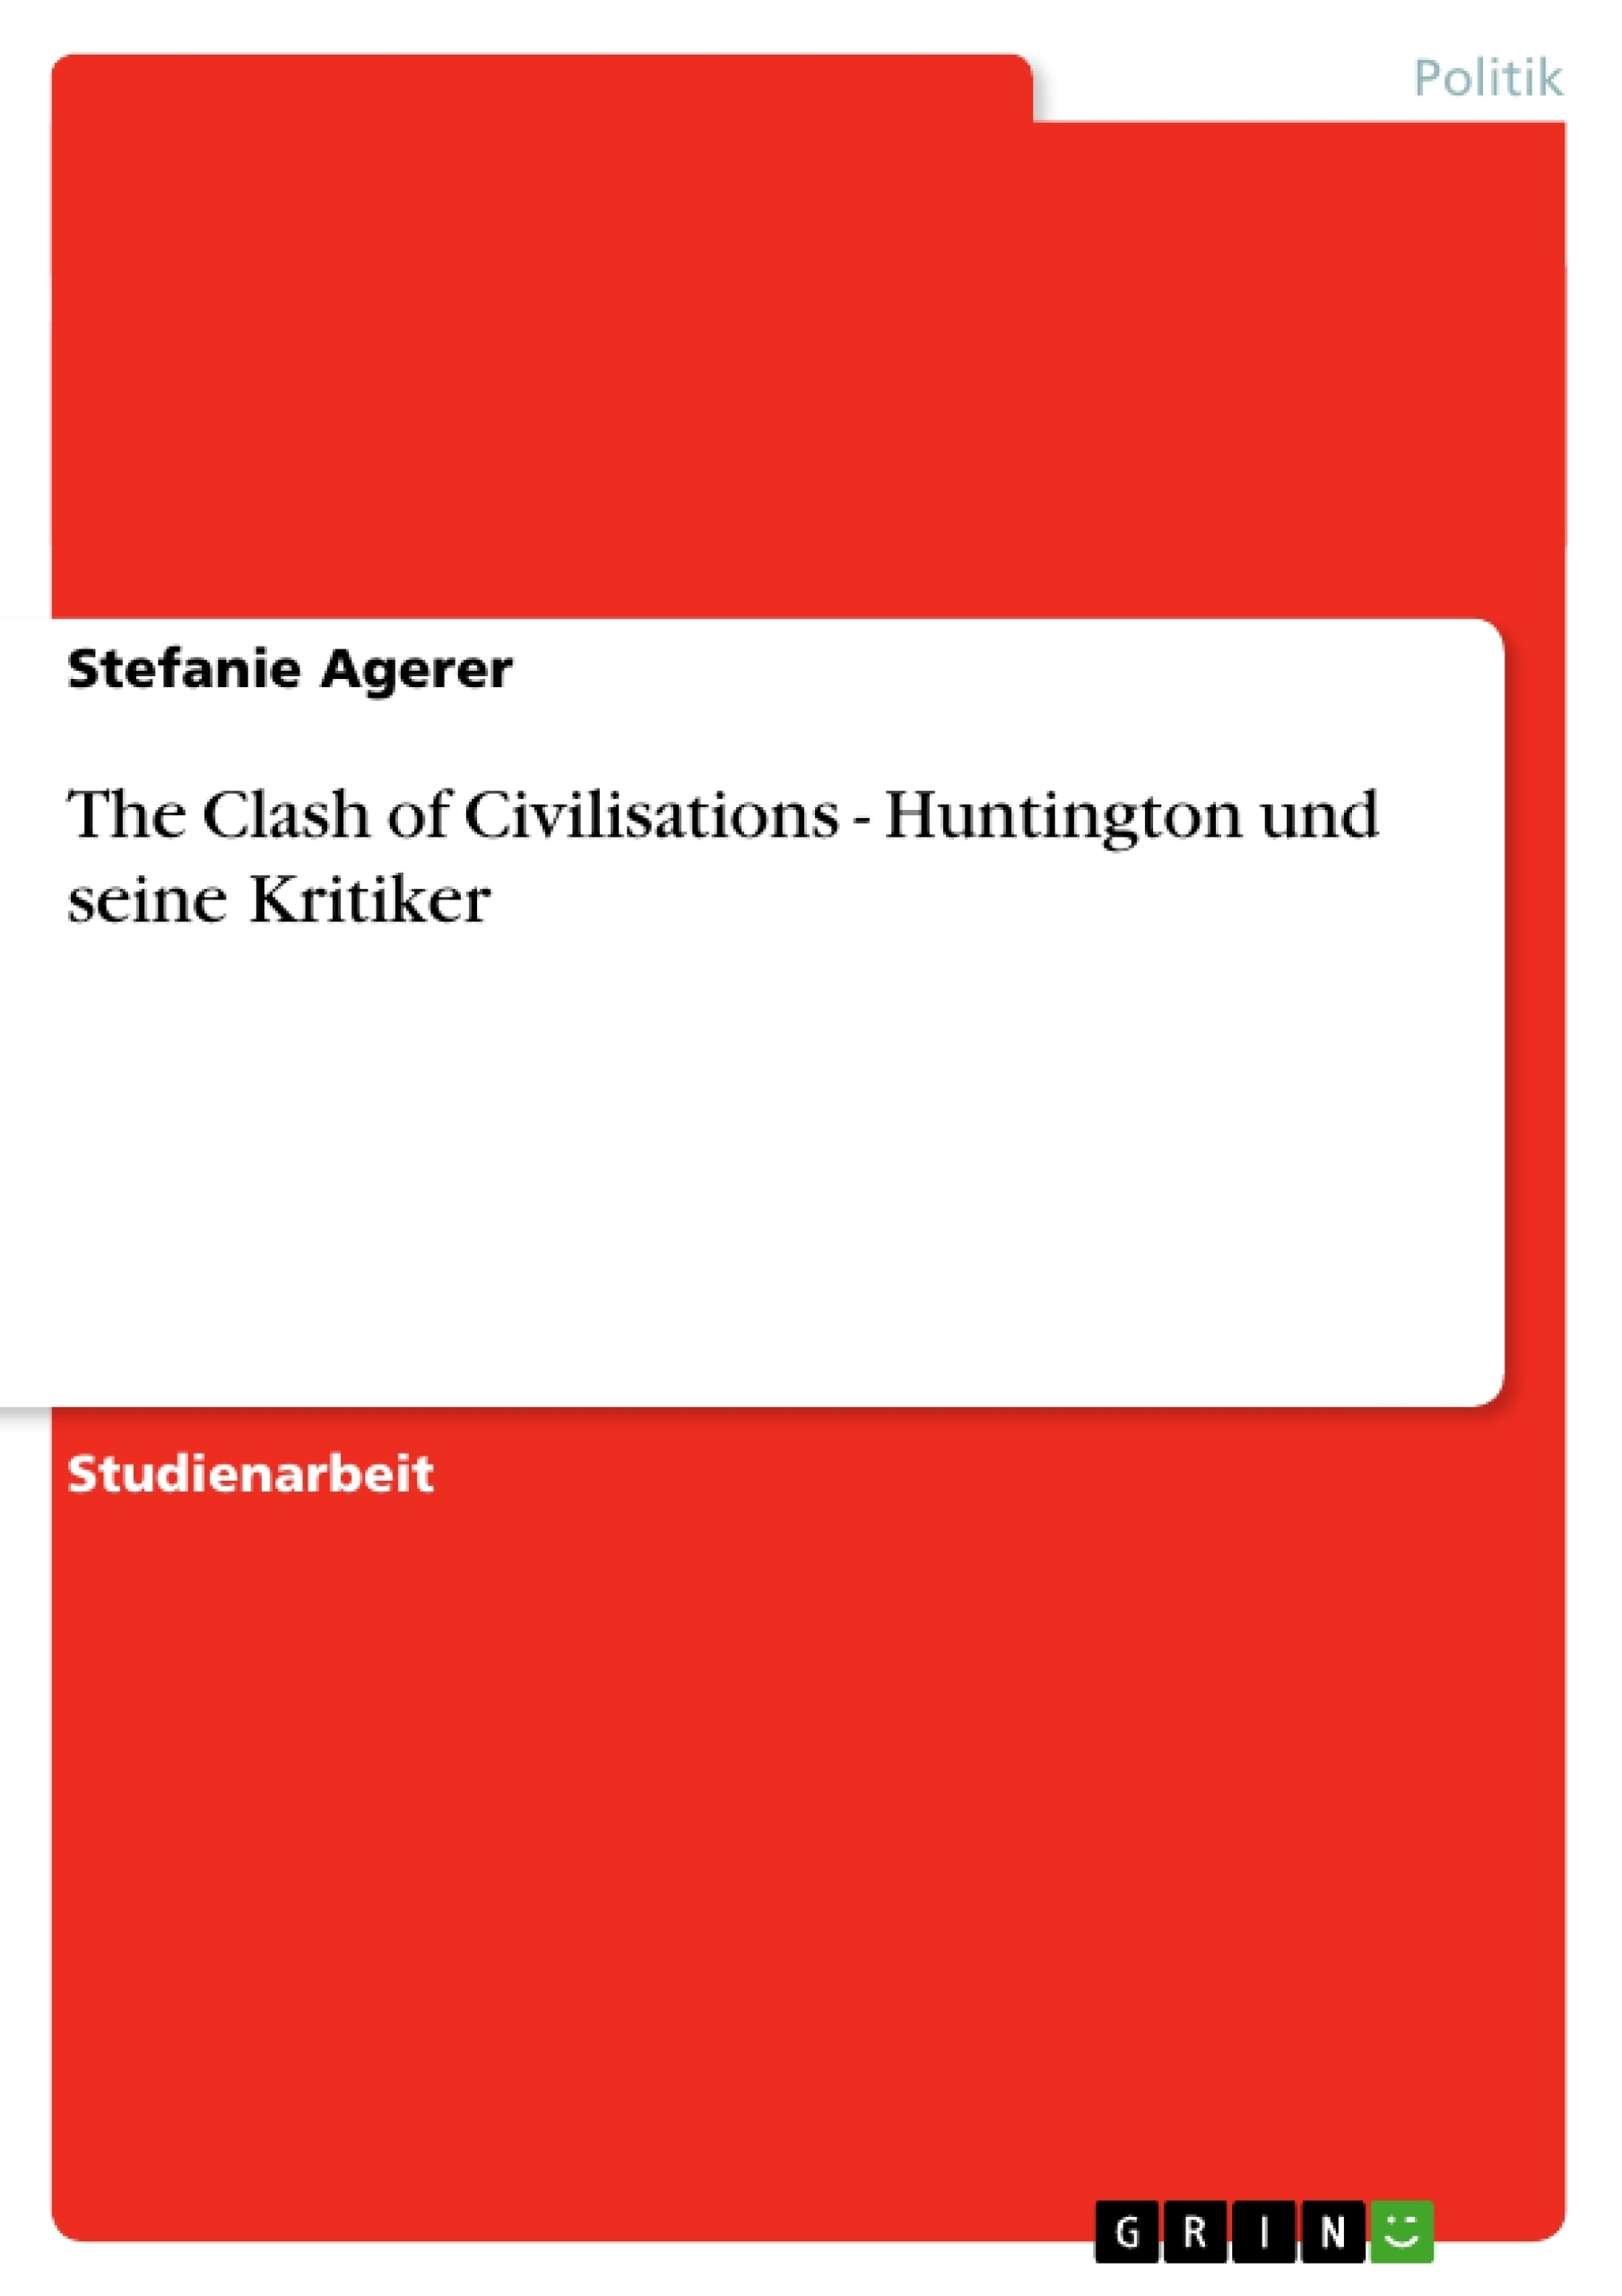 Titel: The Clash of Civilisations - Huntington und seine Kritiker